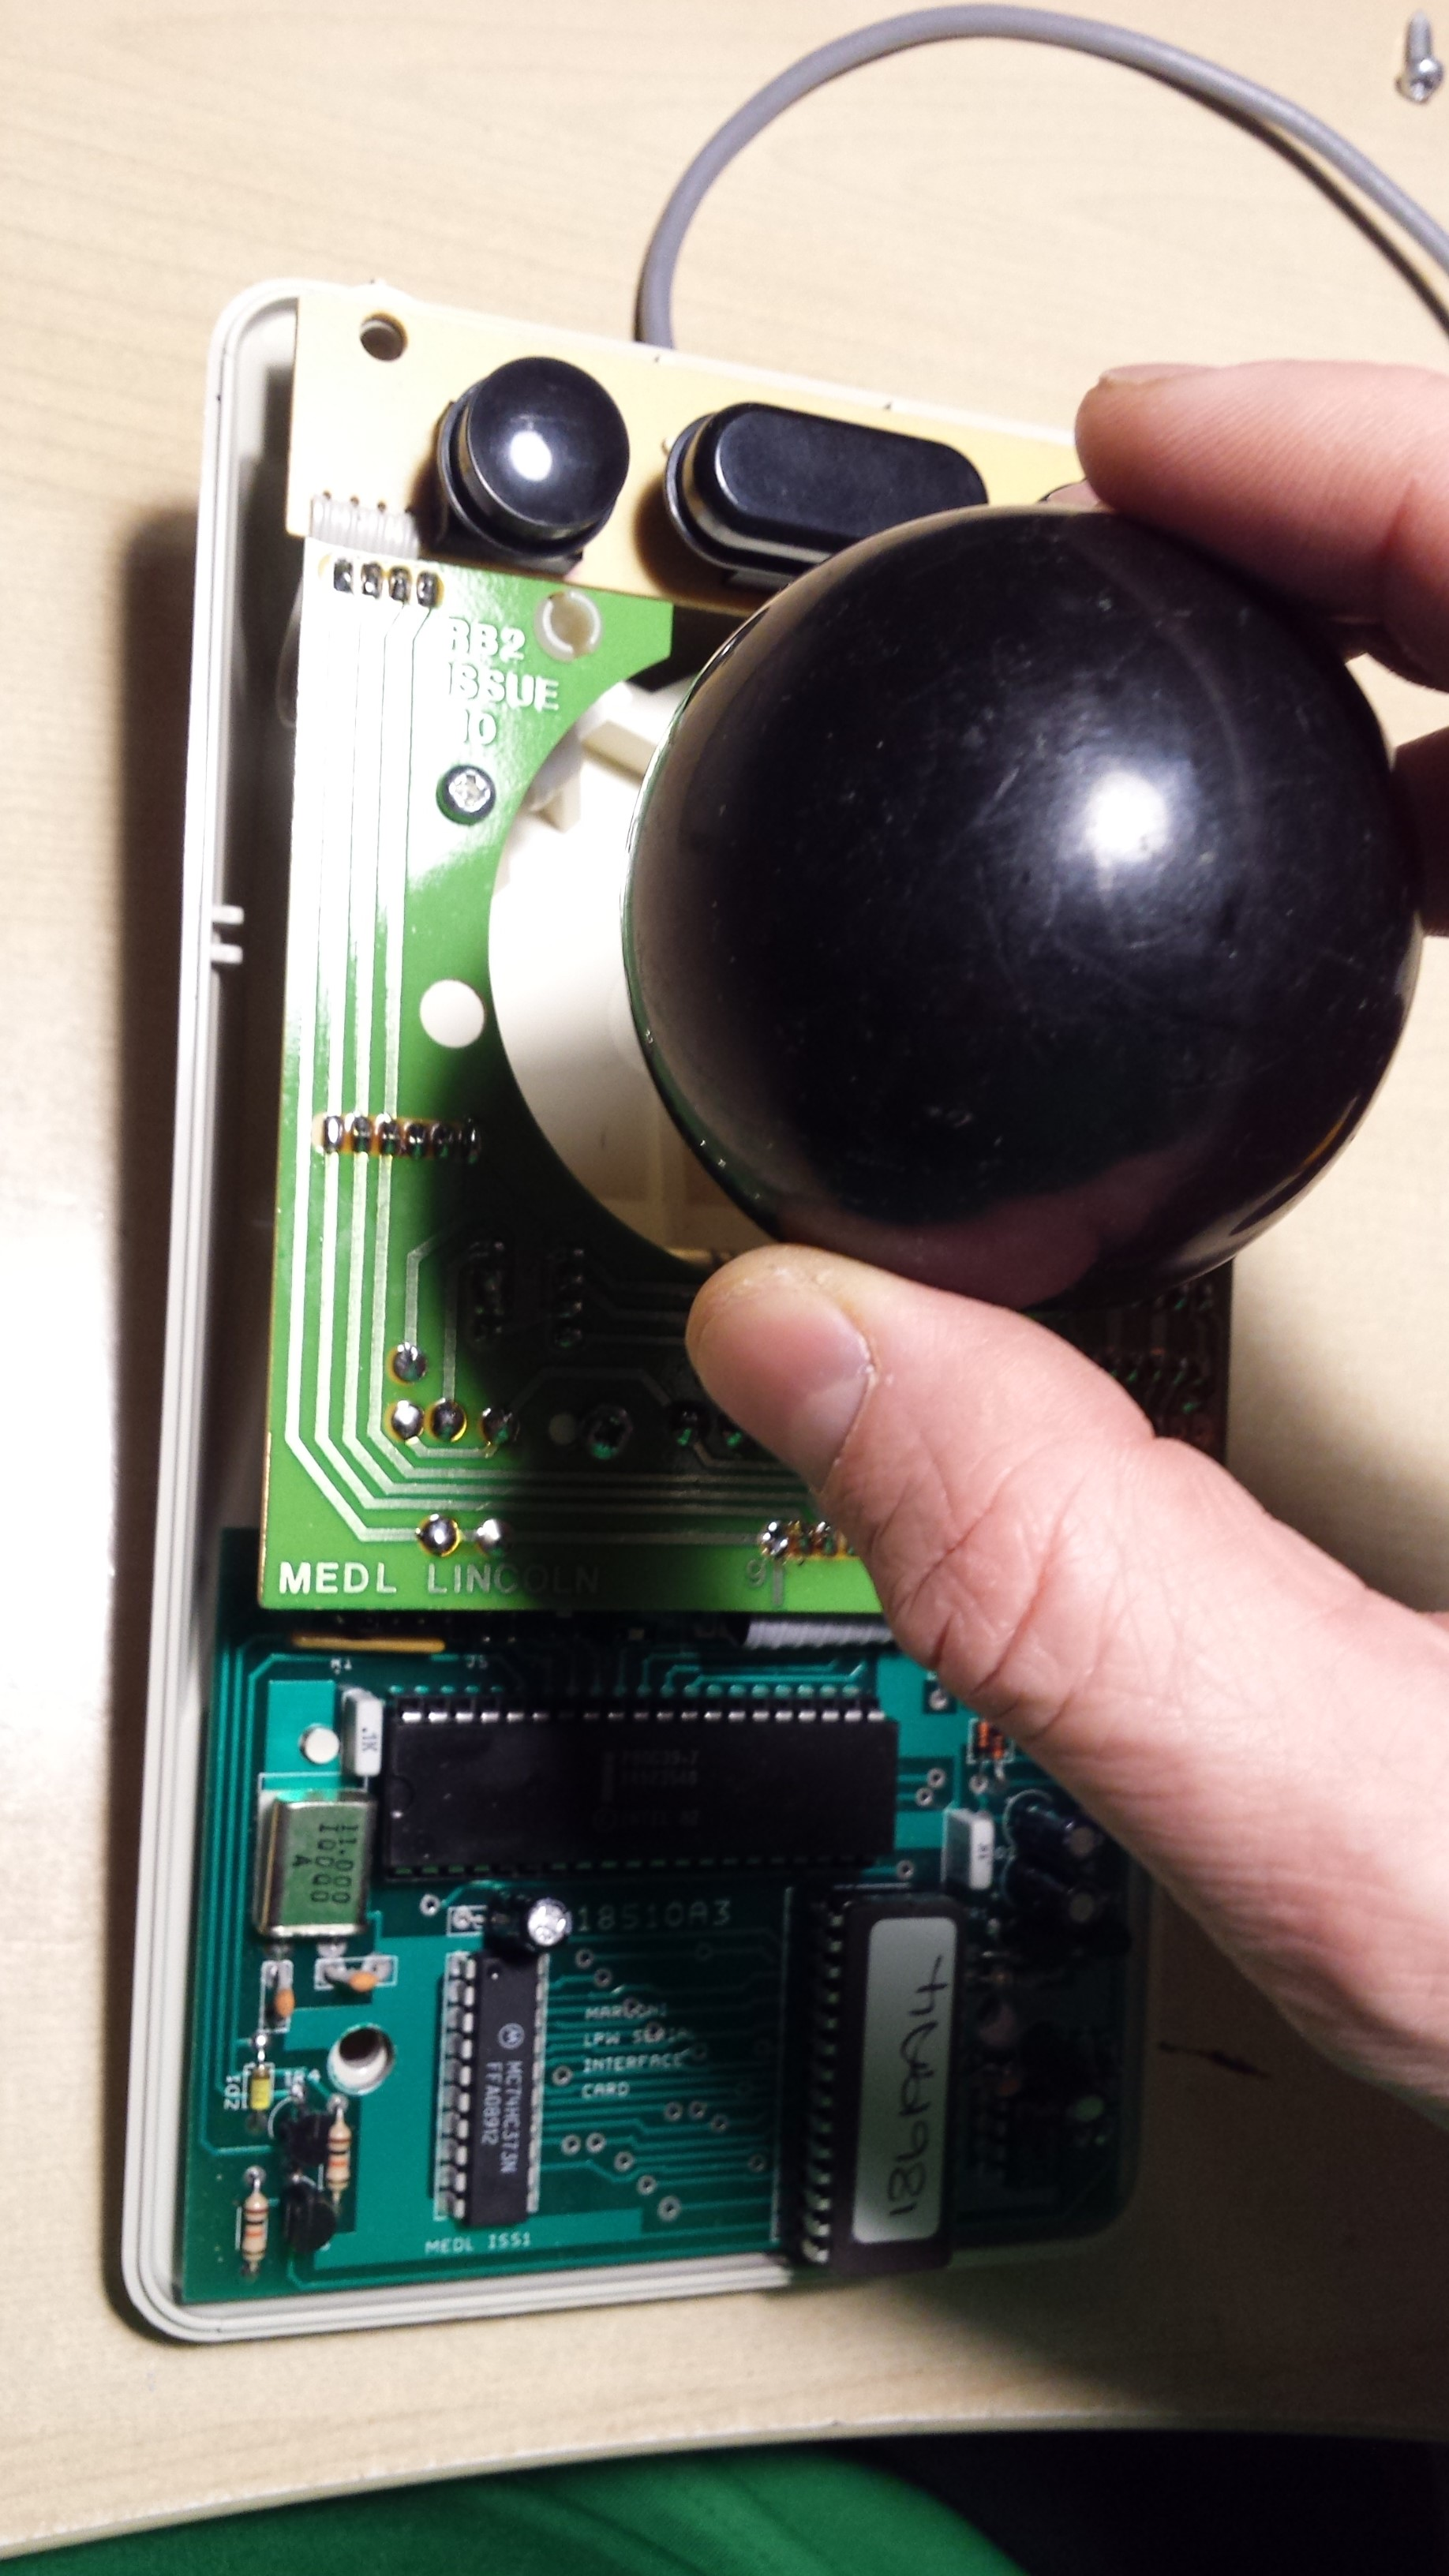 HDSDR trackerball VFO project – LB3HC's engineering blog